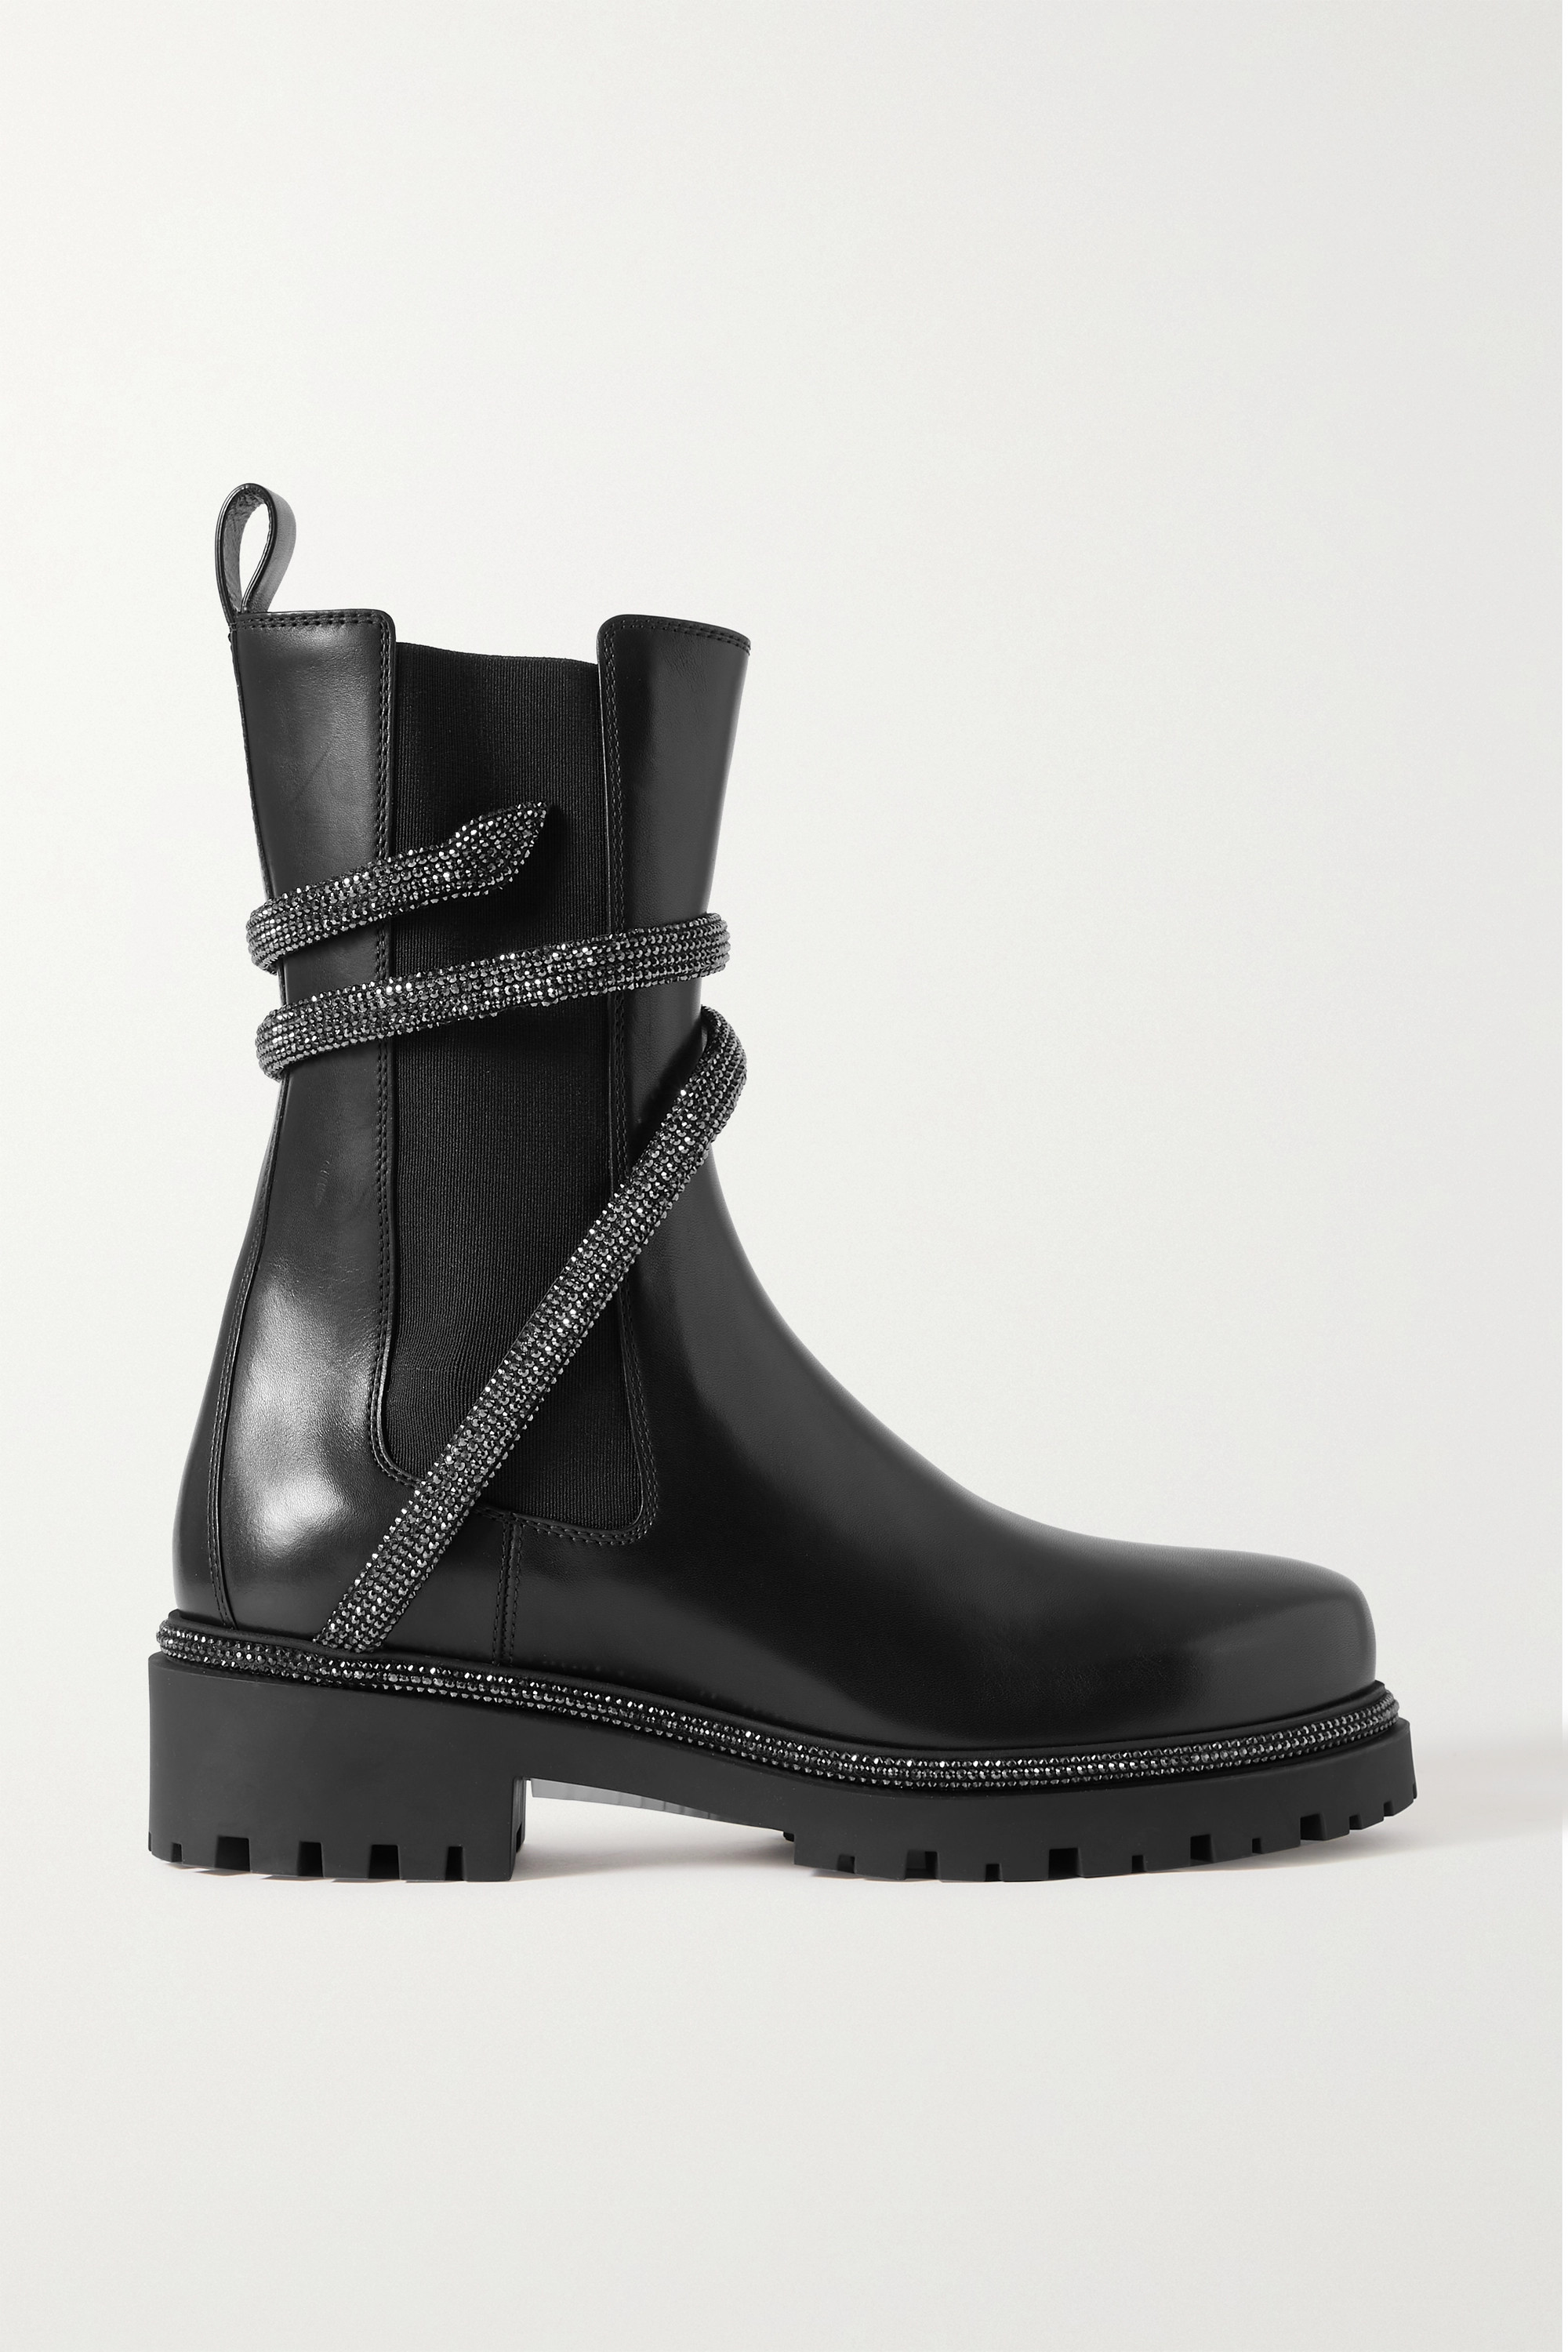 René Caovilla - Cleo crystal-embellished leather Chelsea boots